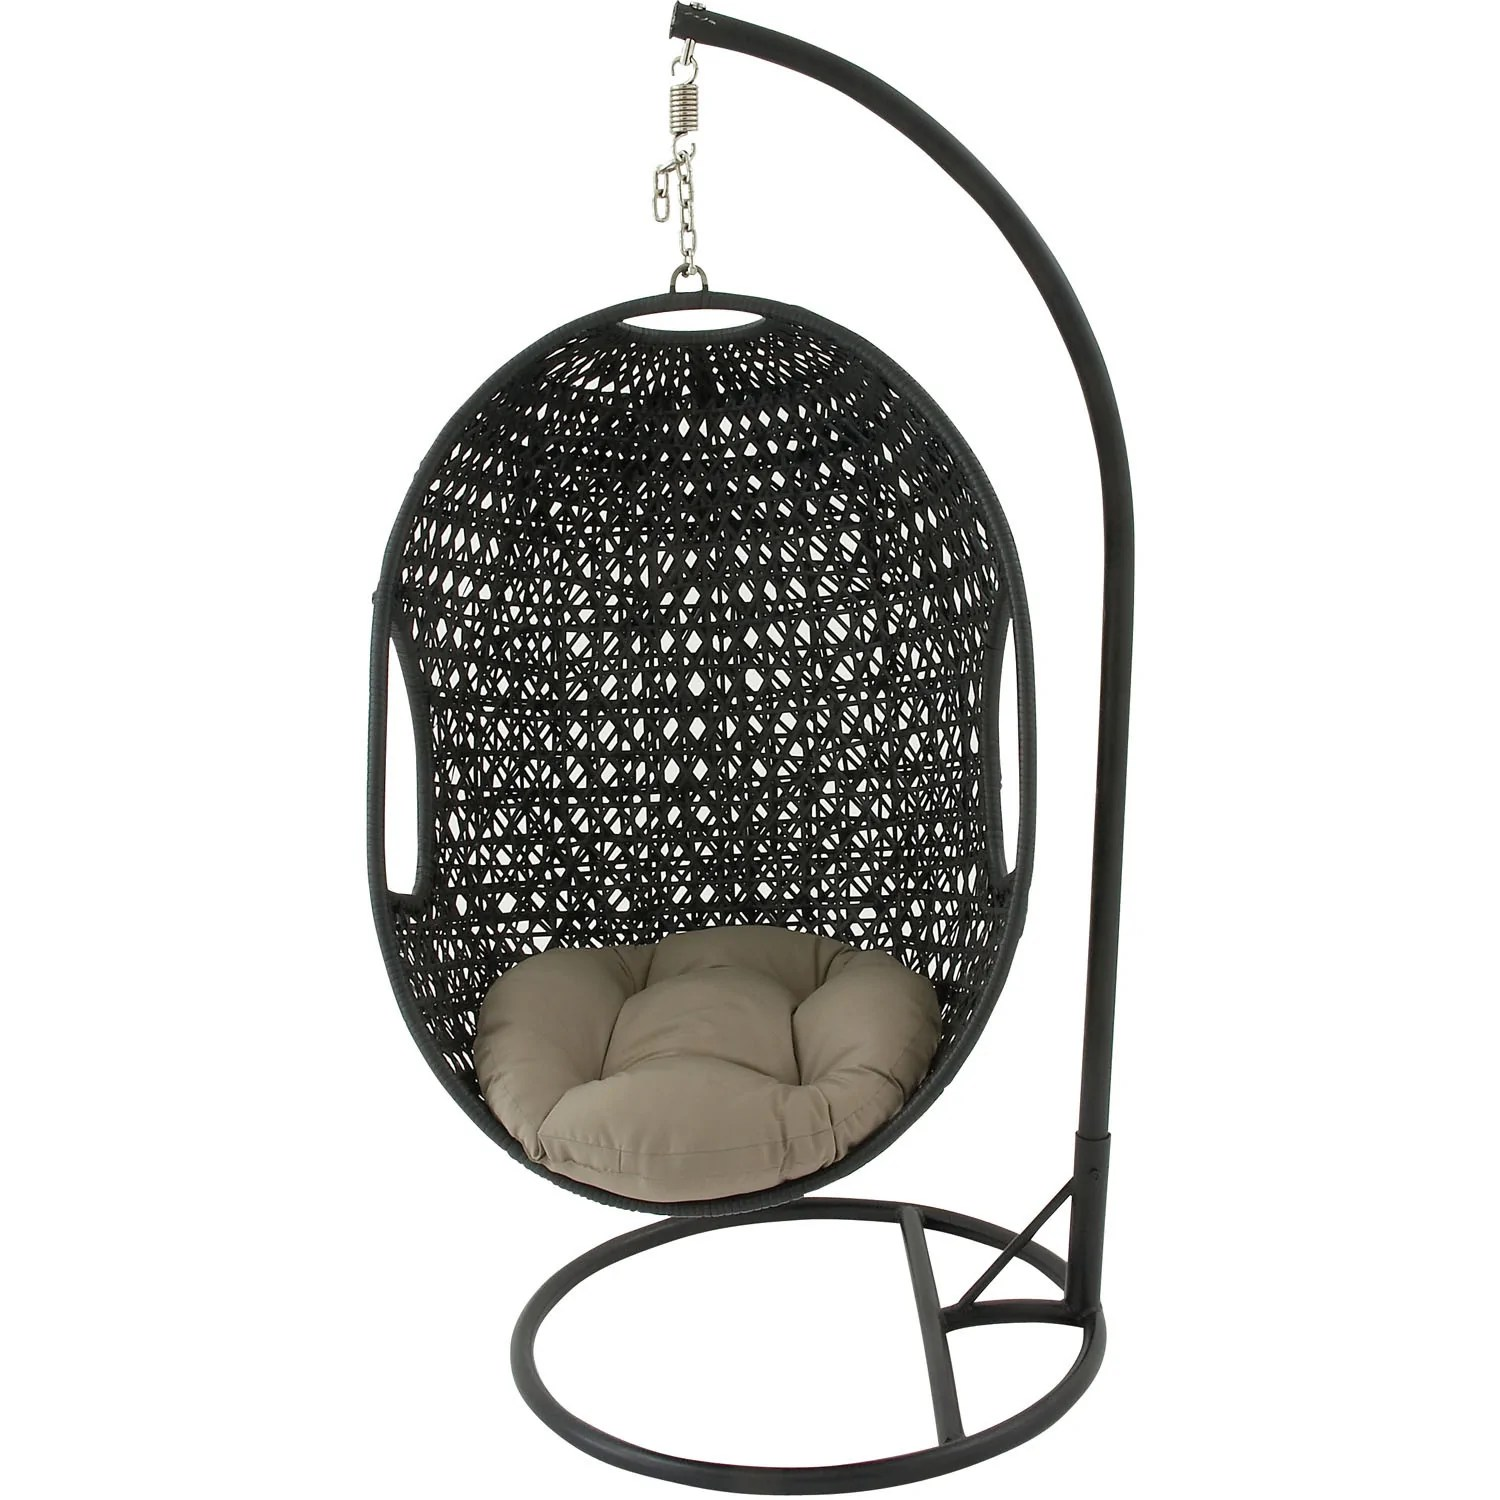 egg chair swing spandex covers walmart hanover outdoor wicker rattan hanging swing01 bbqdeal com